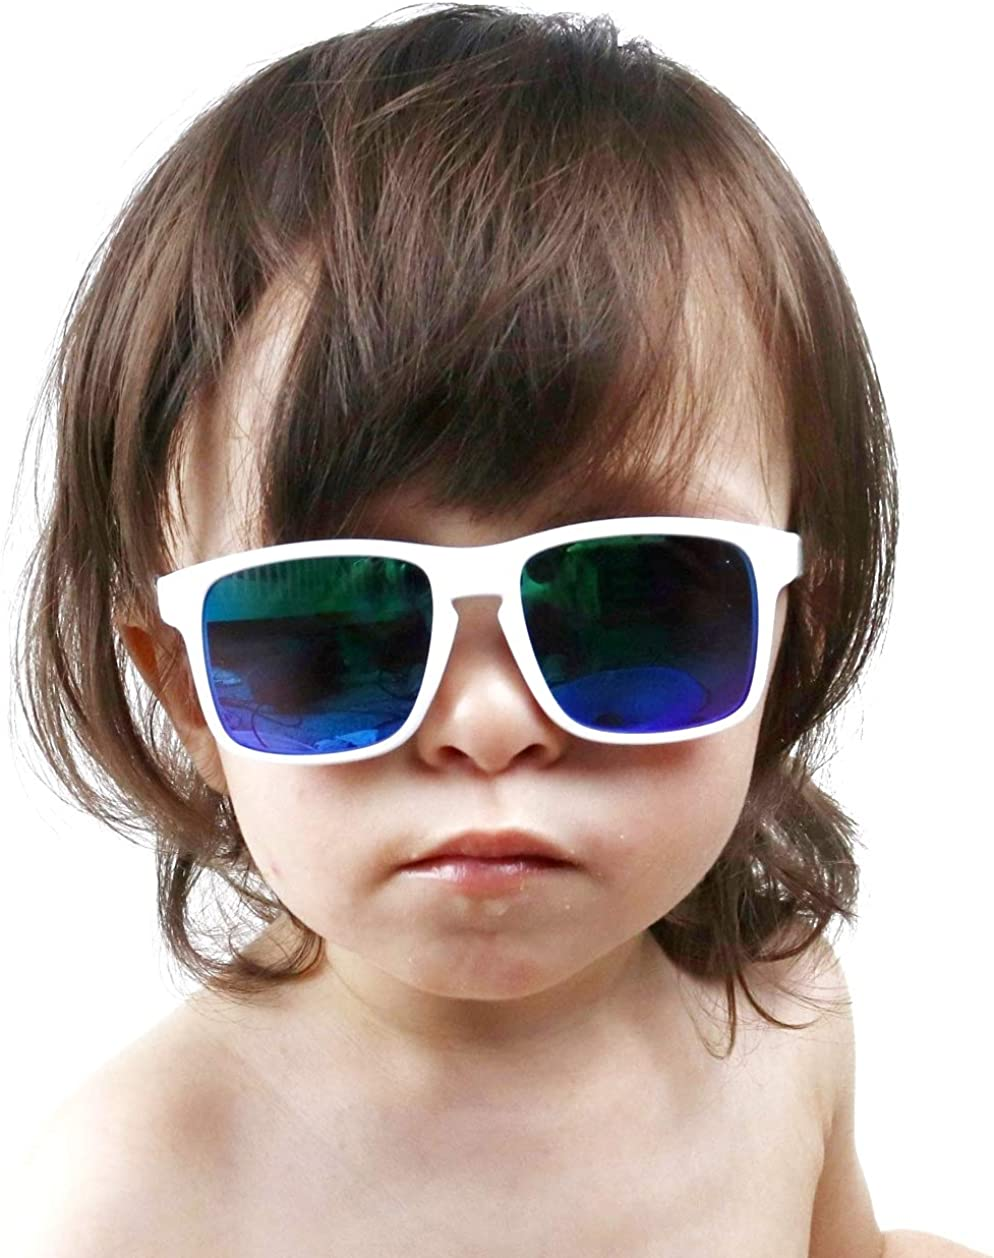 KD02 Baby Infant Toddlers Sports Sunglasses Age 0-18 Months